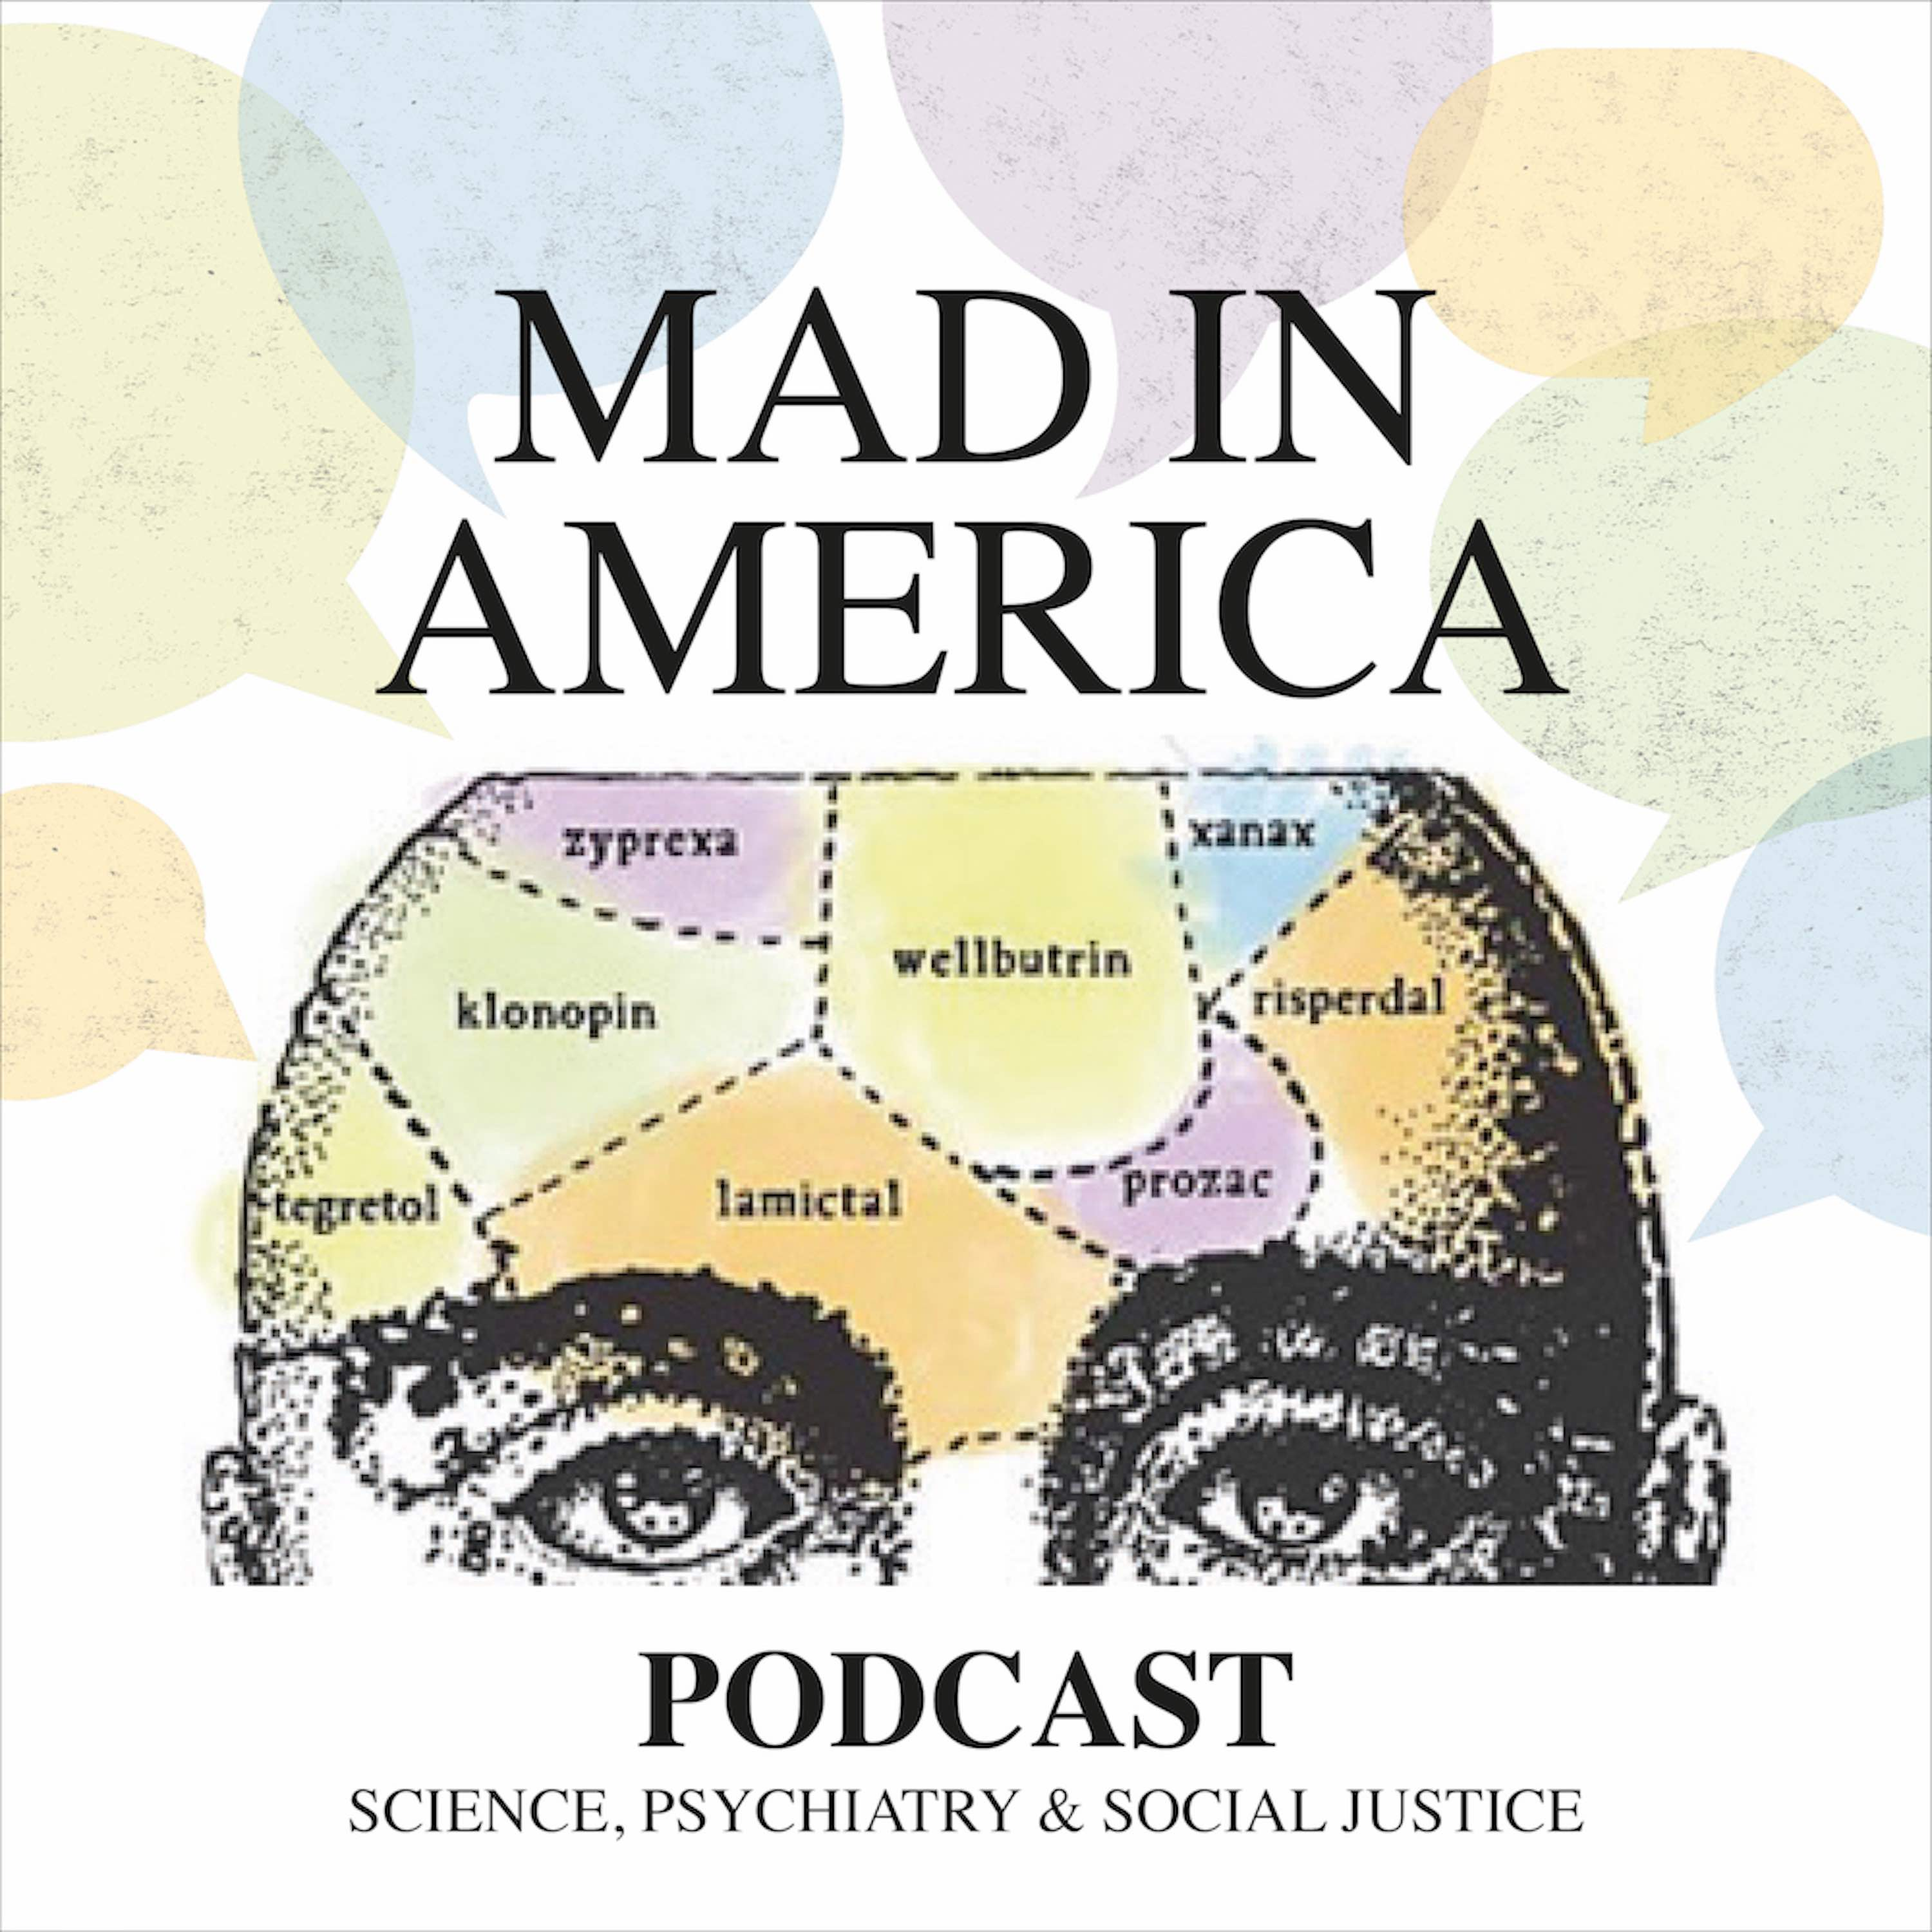 Mad in America: Rethinking Mental Health - Michael O'Loughlin - Exploring Narrative Approaches to Psychological Distress